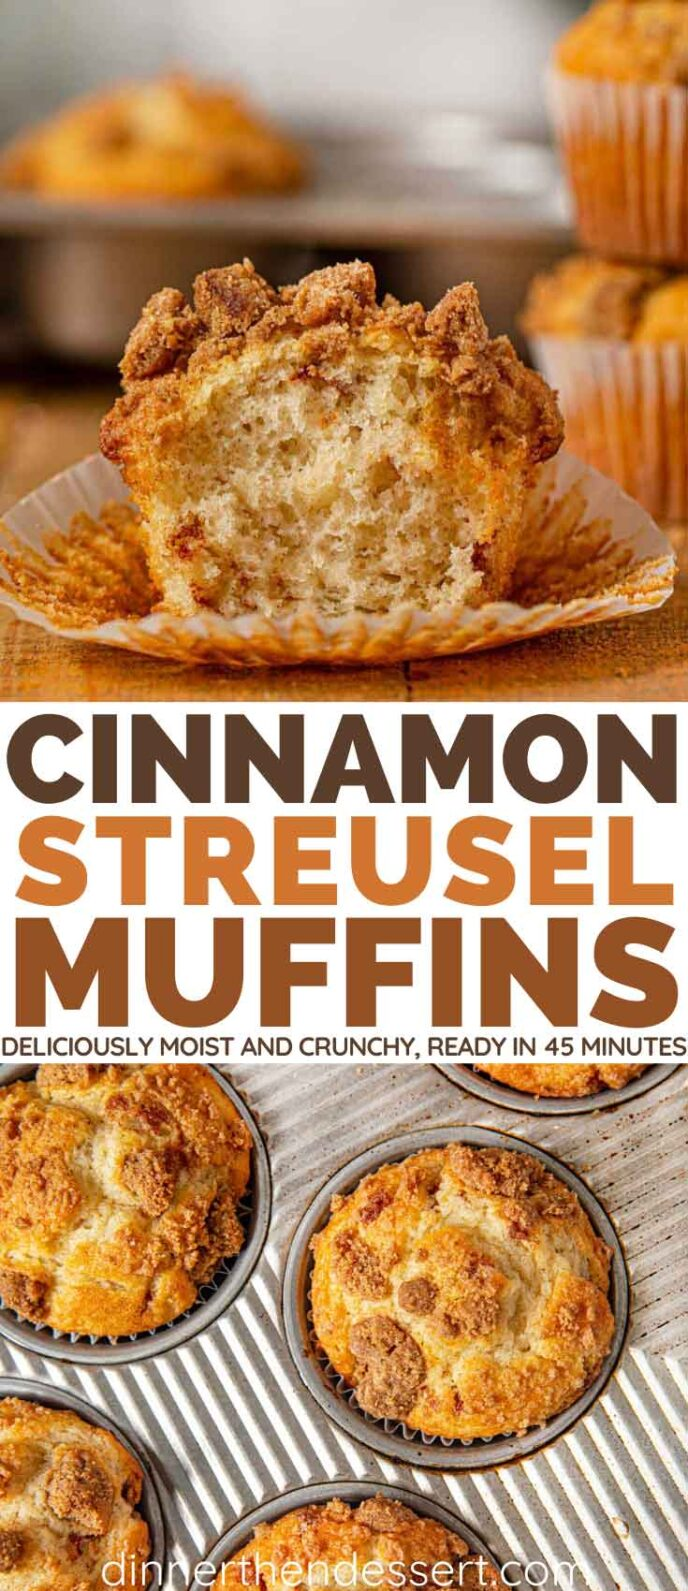 Cinnamon Streusel Muffins Collage